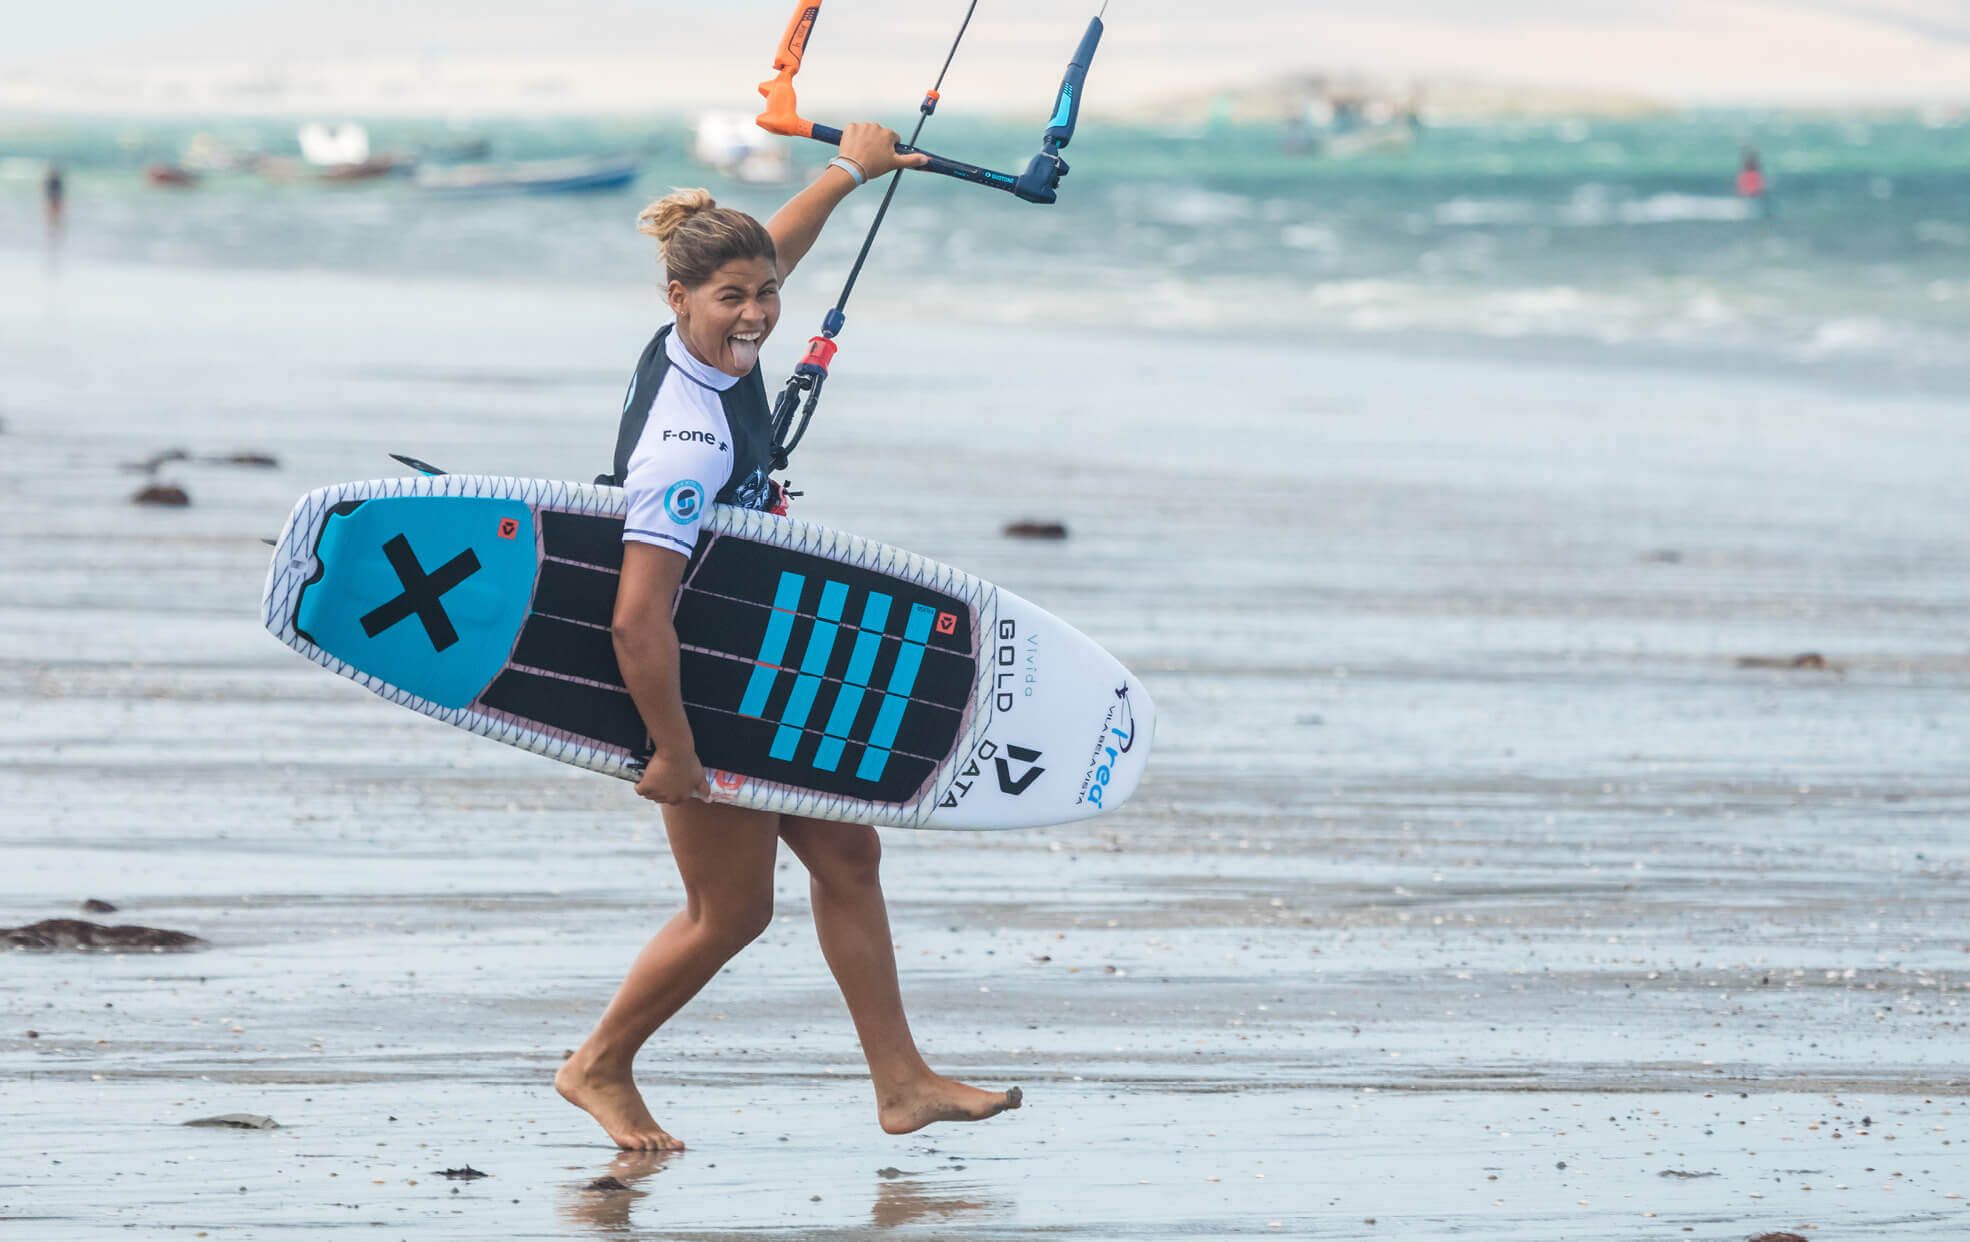 Duotone Kiteboarding Mikaili Sol is ready to ride